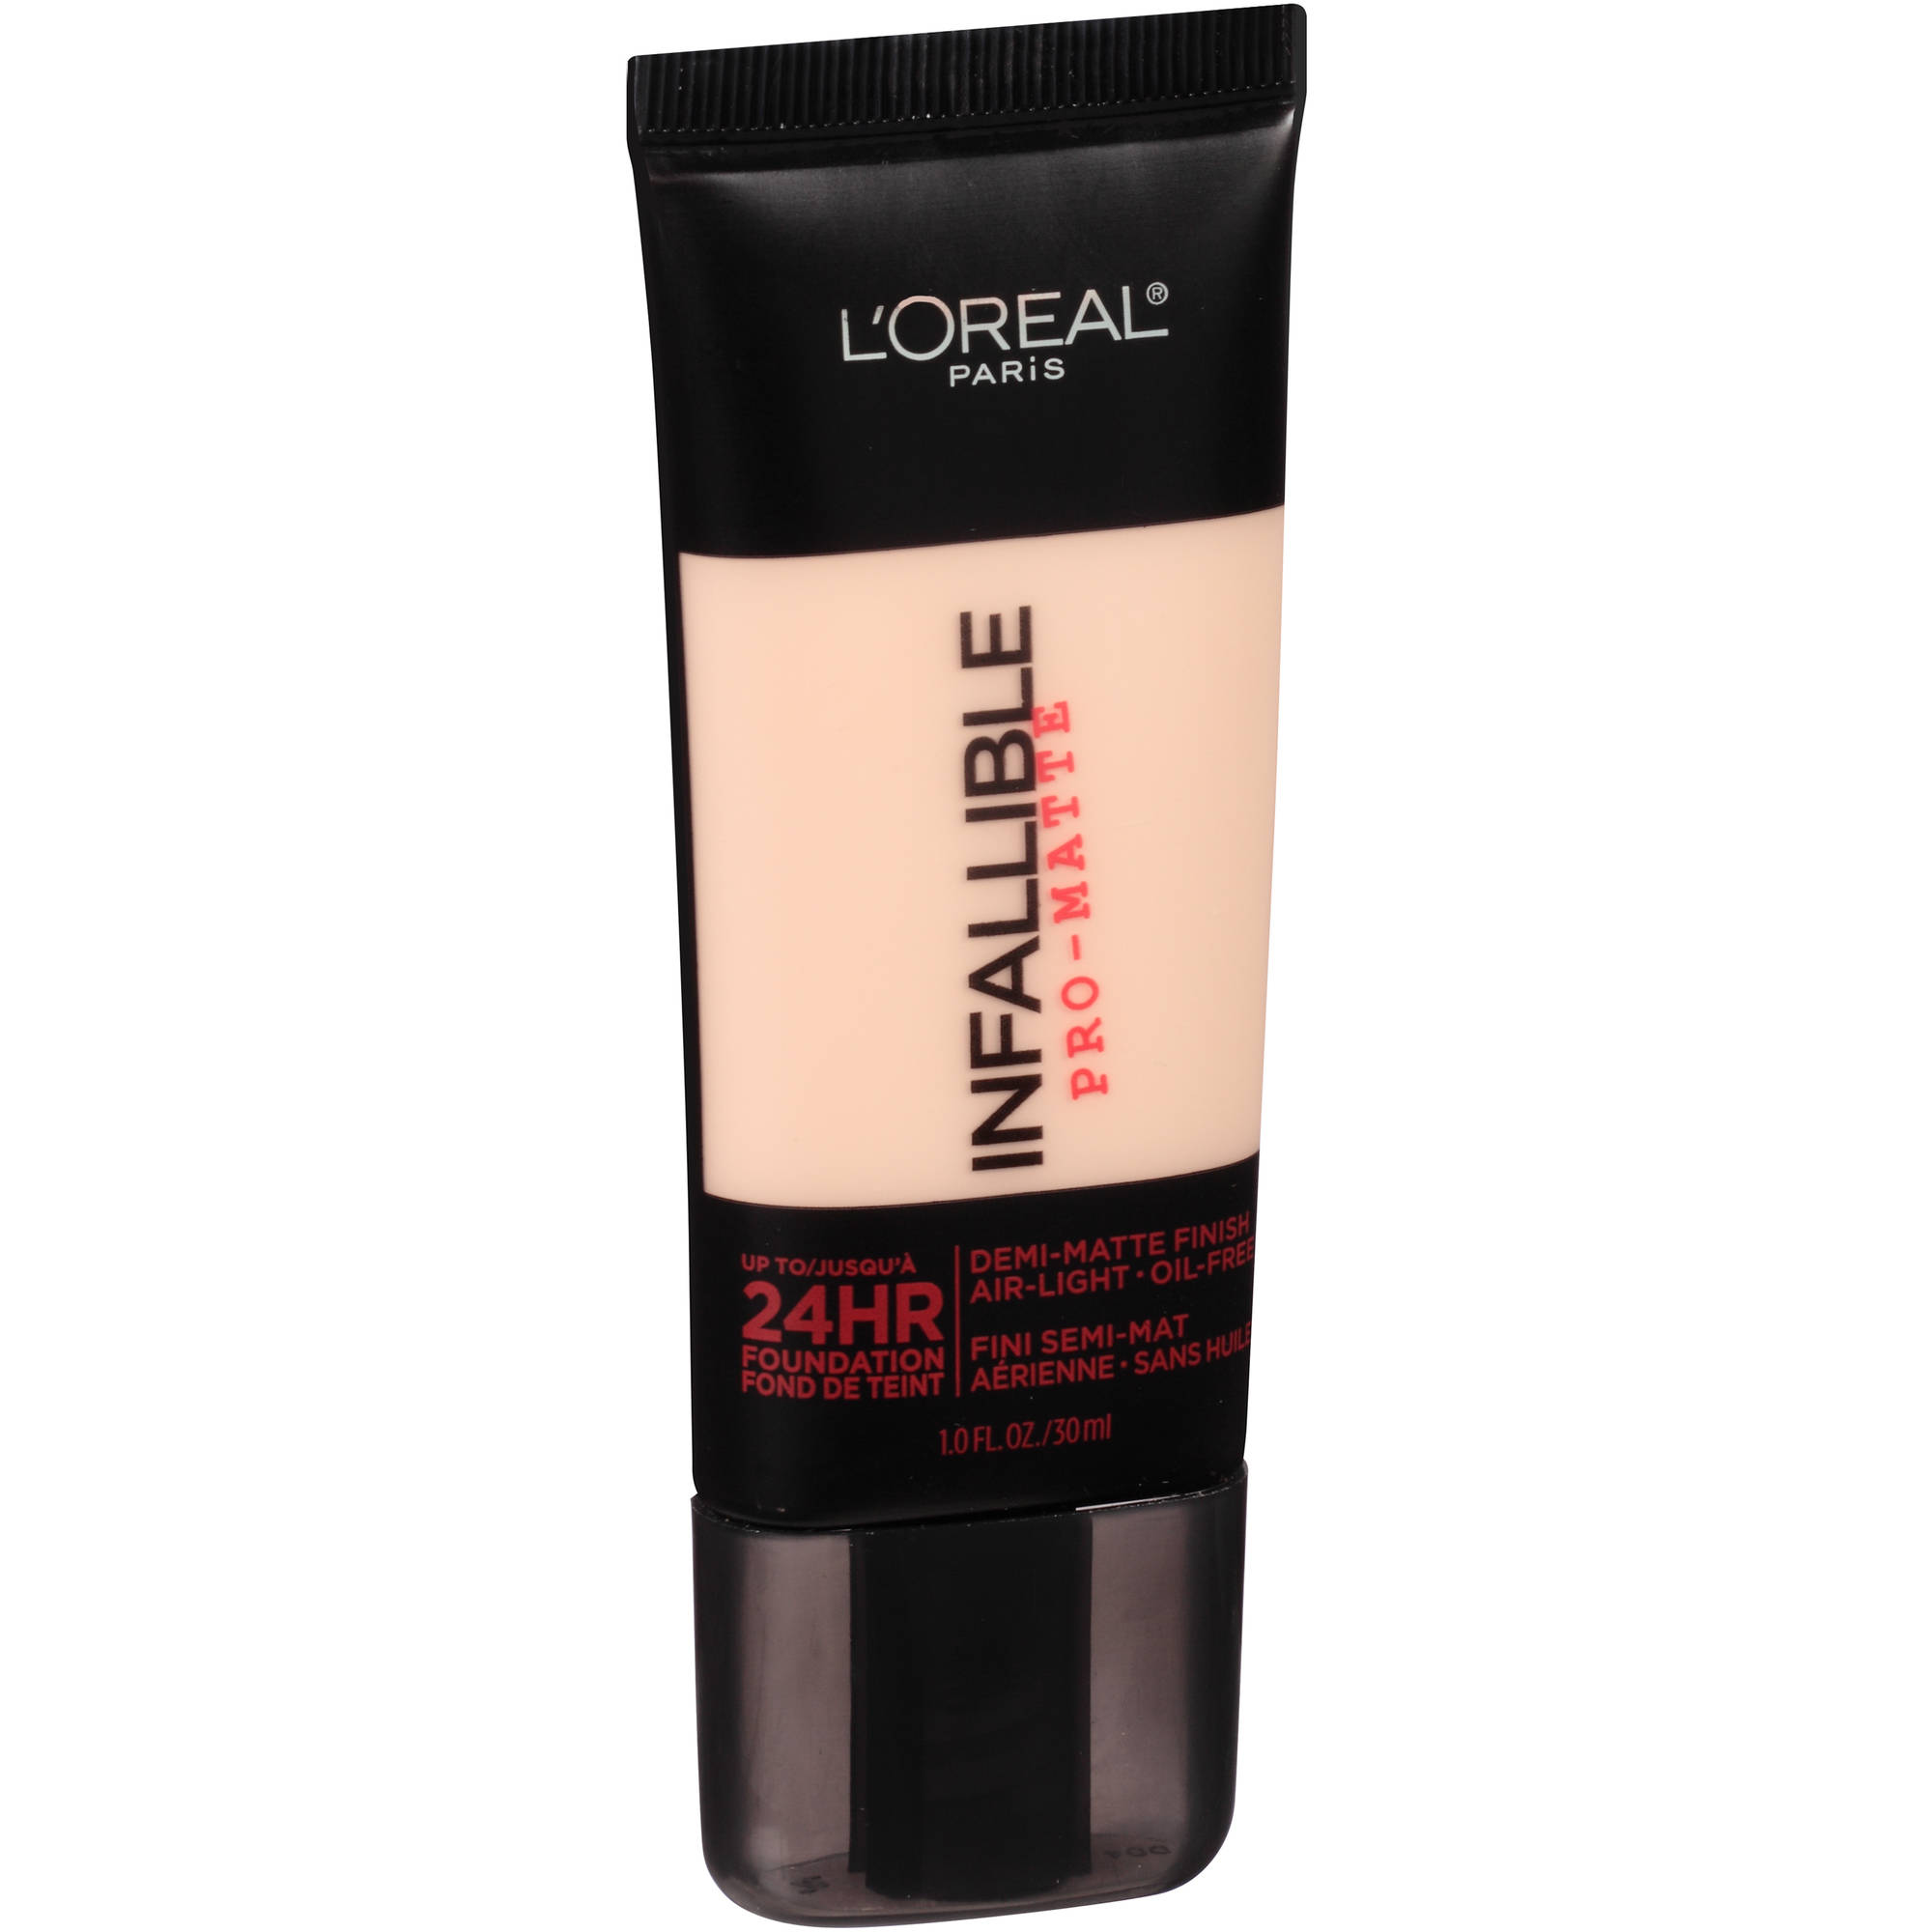 L'Oreal Paris Infallible Pro-Matte 24HR Foundation, 101 Classic Ivory, 1.0 oz - Walmart.com